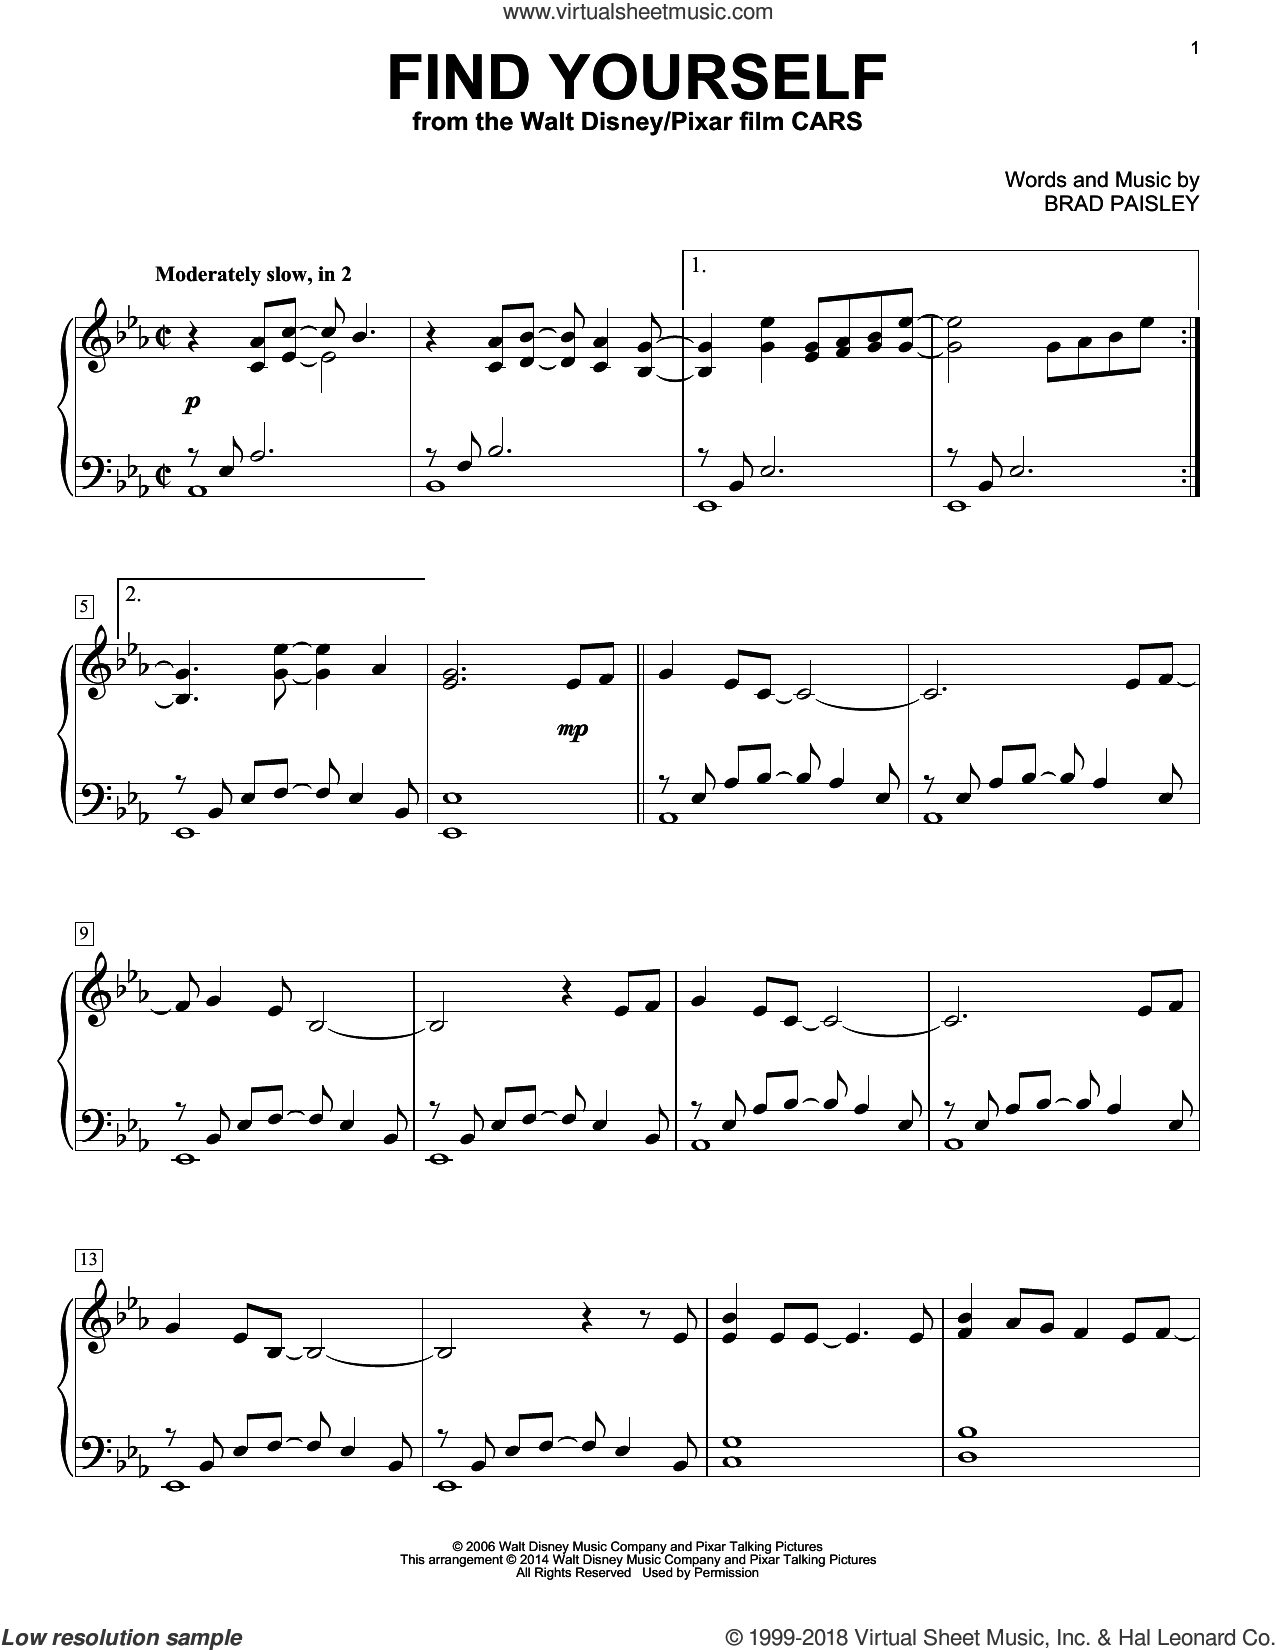 Find Yourself sheet music for piano solo by Brad Paisley